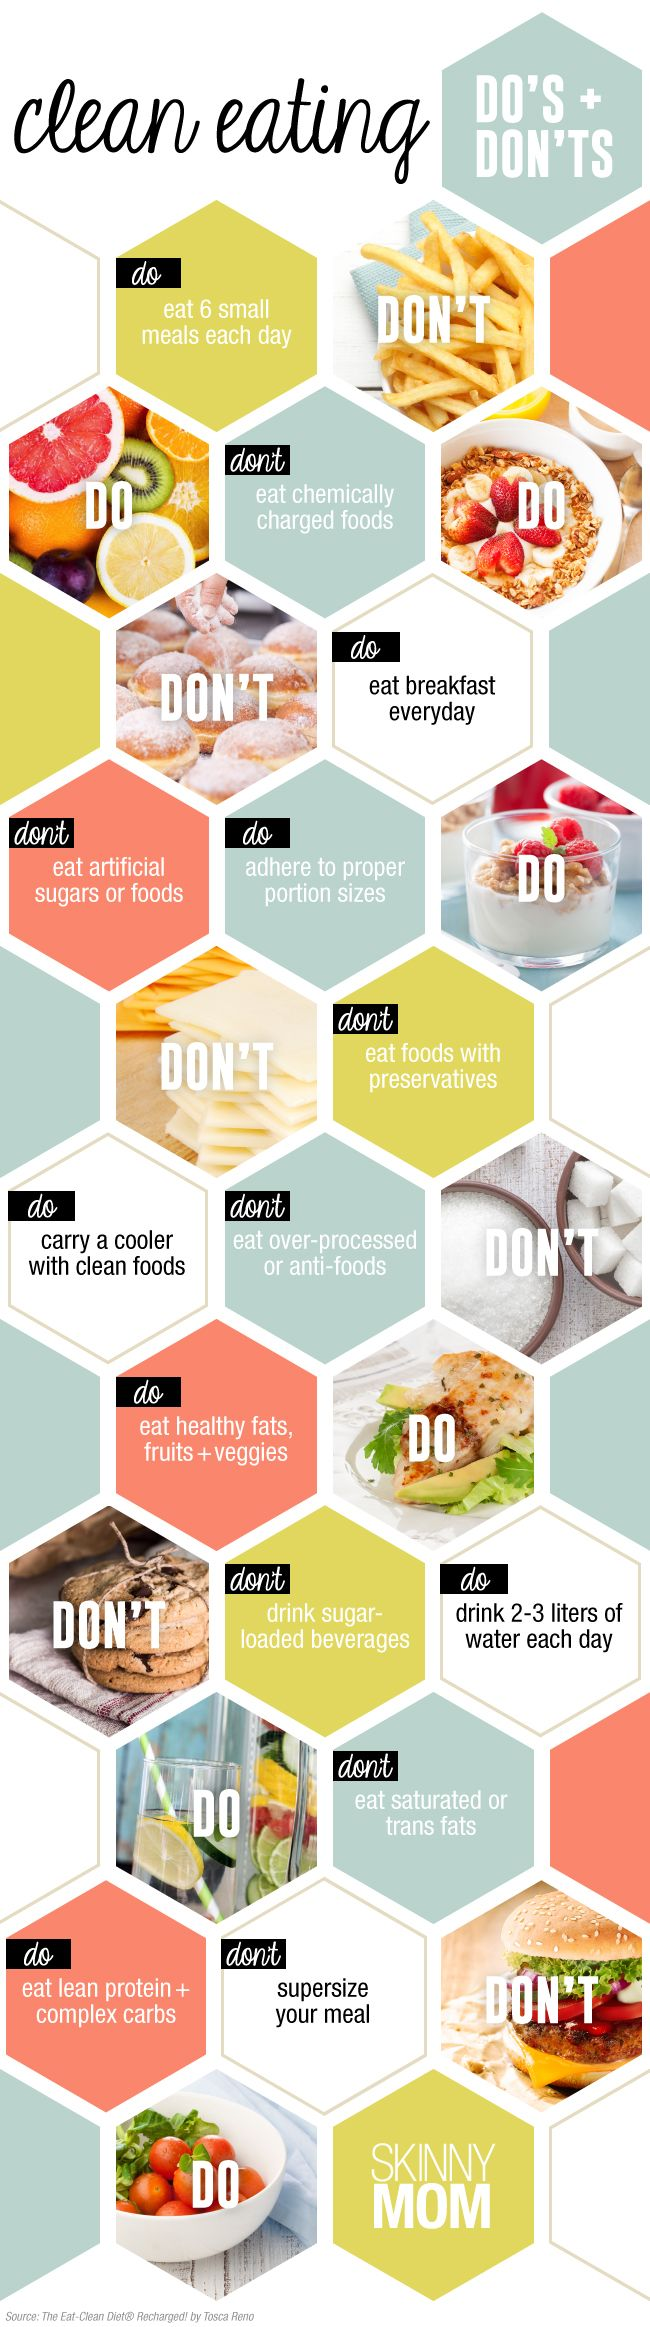 Clean Eating: Do's and Don'ts for Getting Started